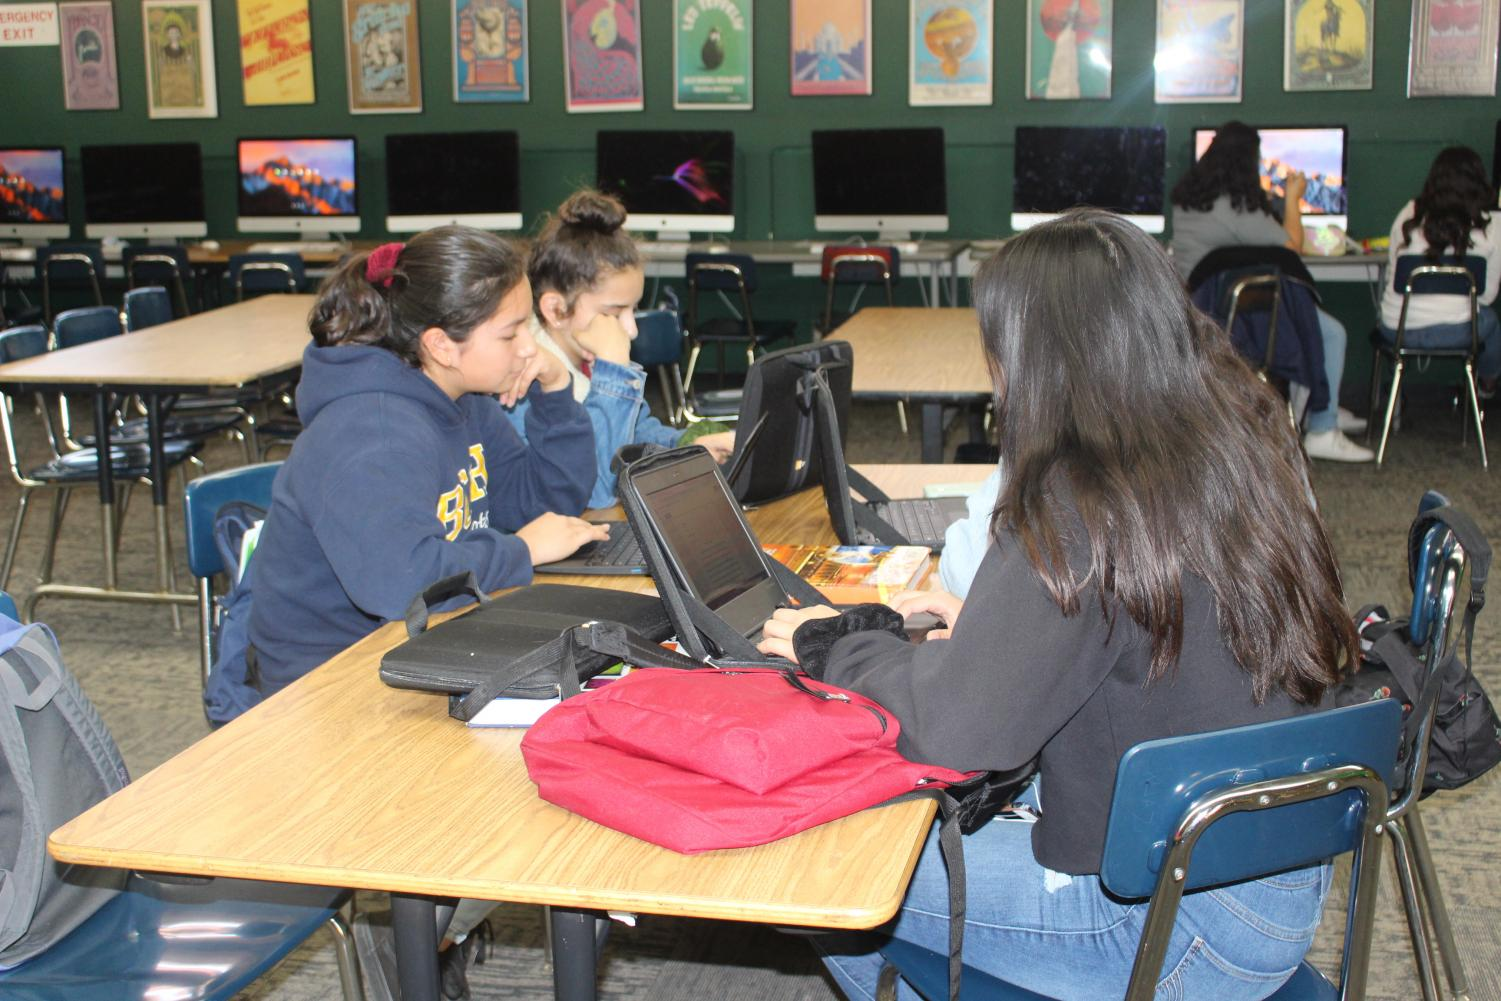 Freshmen students seen using their Chromebooks during their free time.